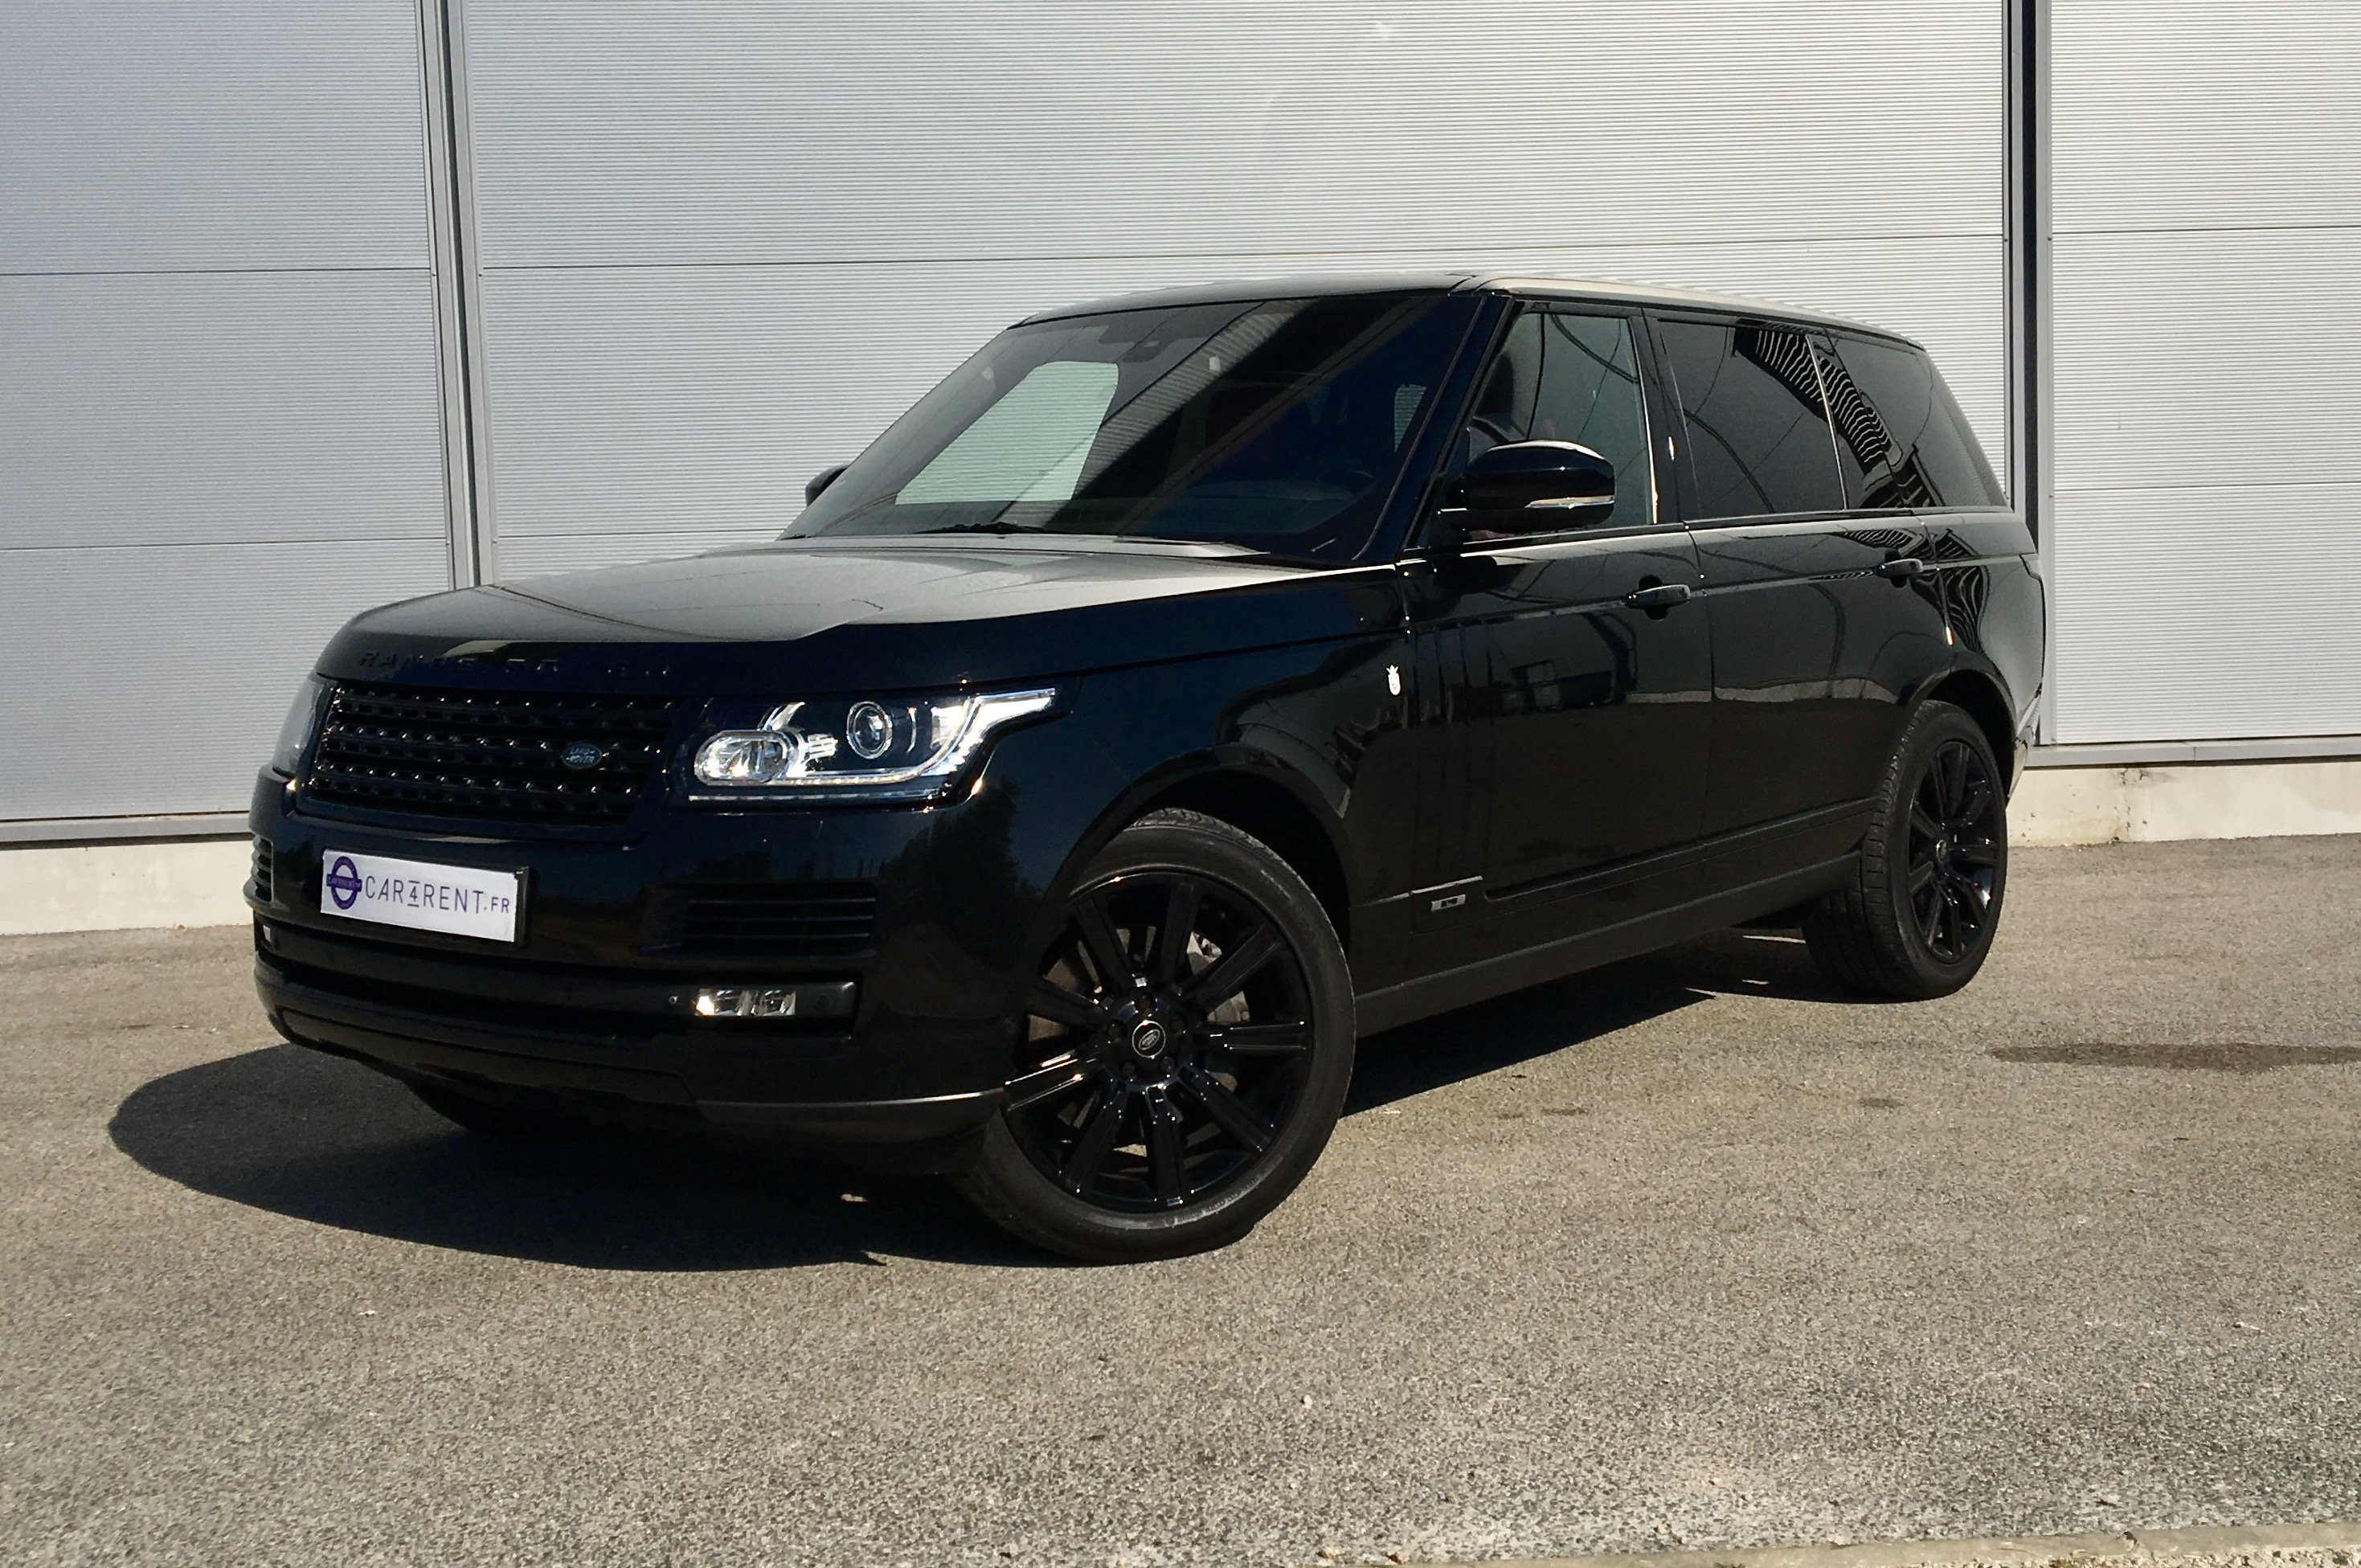 Range Rover Autobiography >> Range Rover Autobiography Long Tdv8 Car4rent